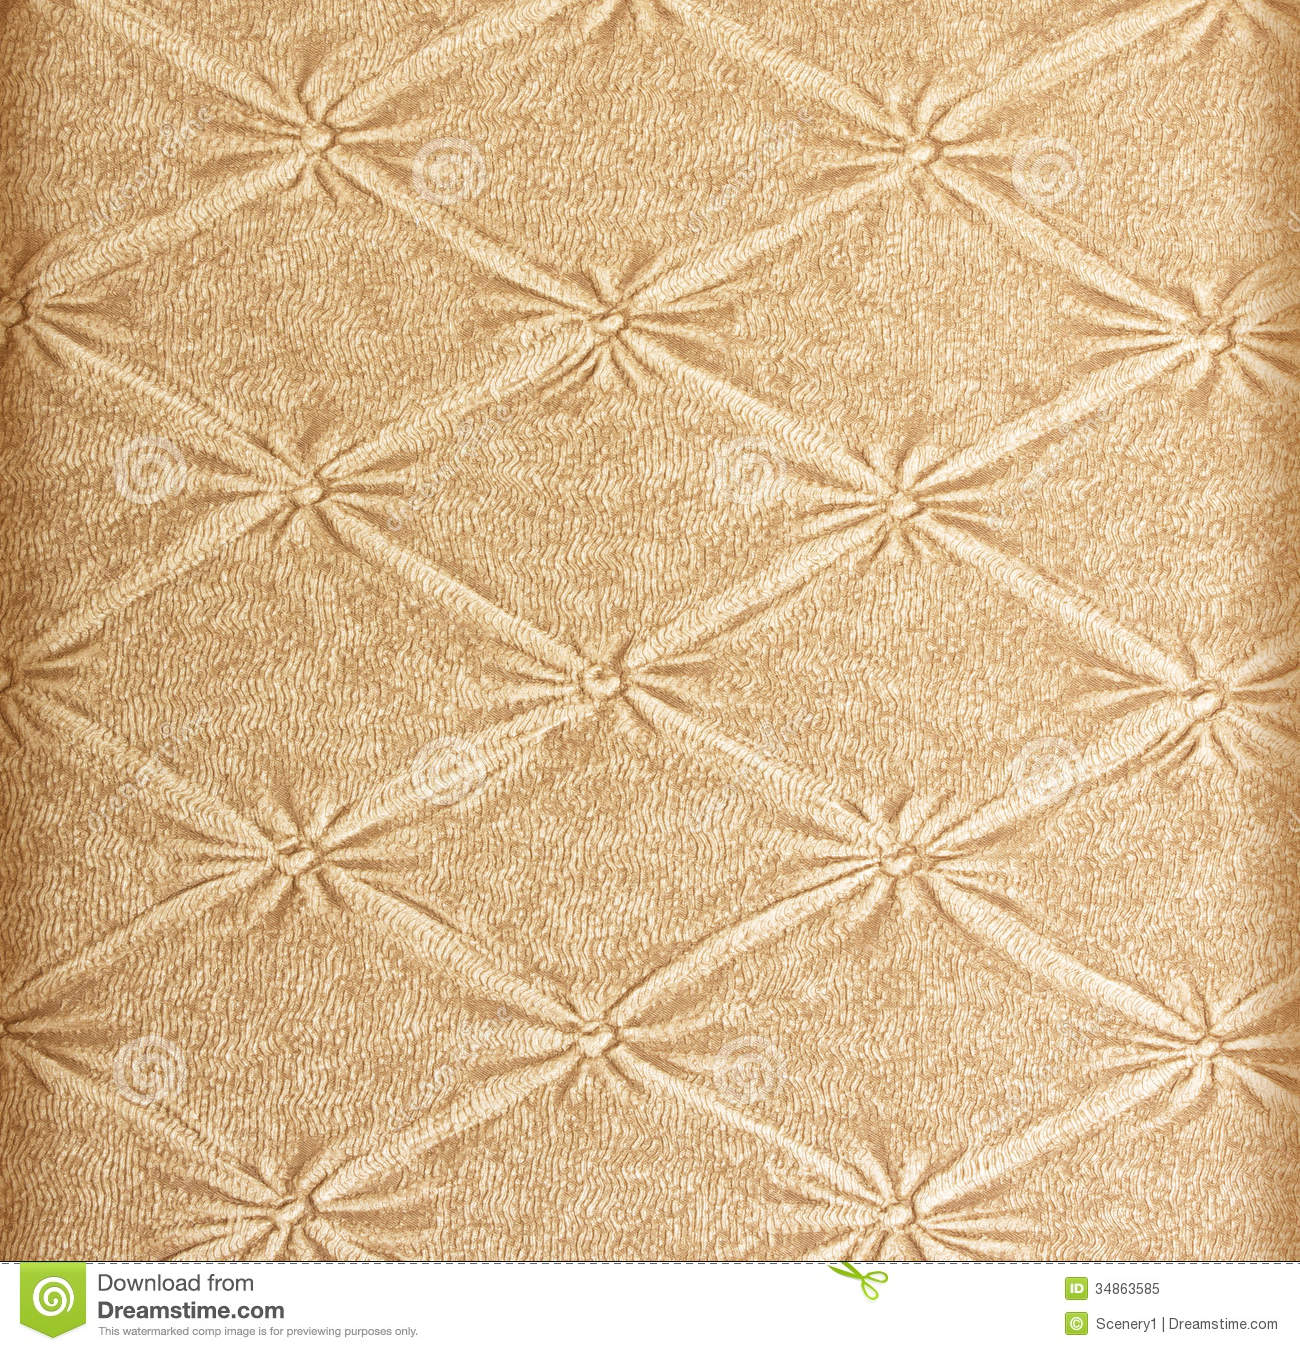 Background wallpaper royalty free stock photo image for High resolution interior images